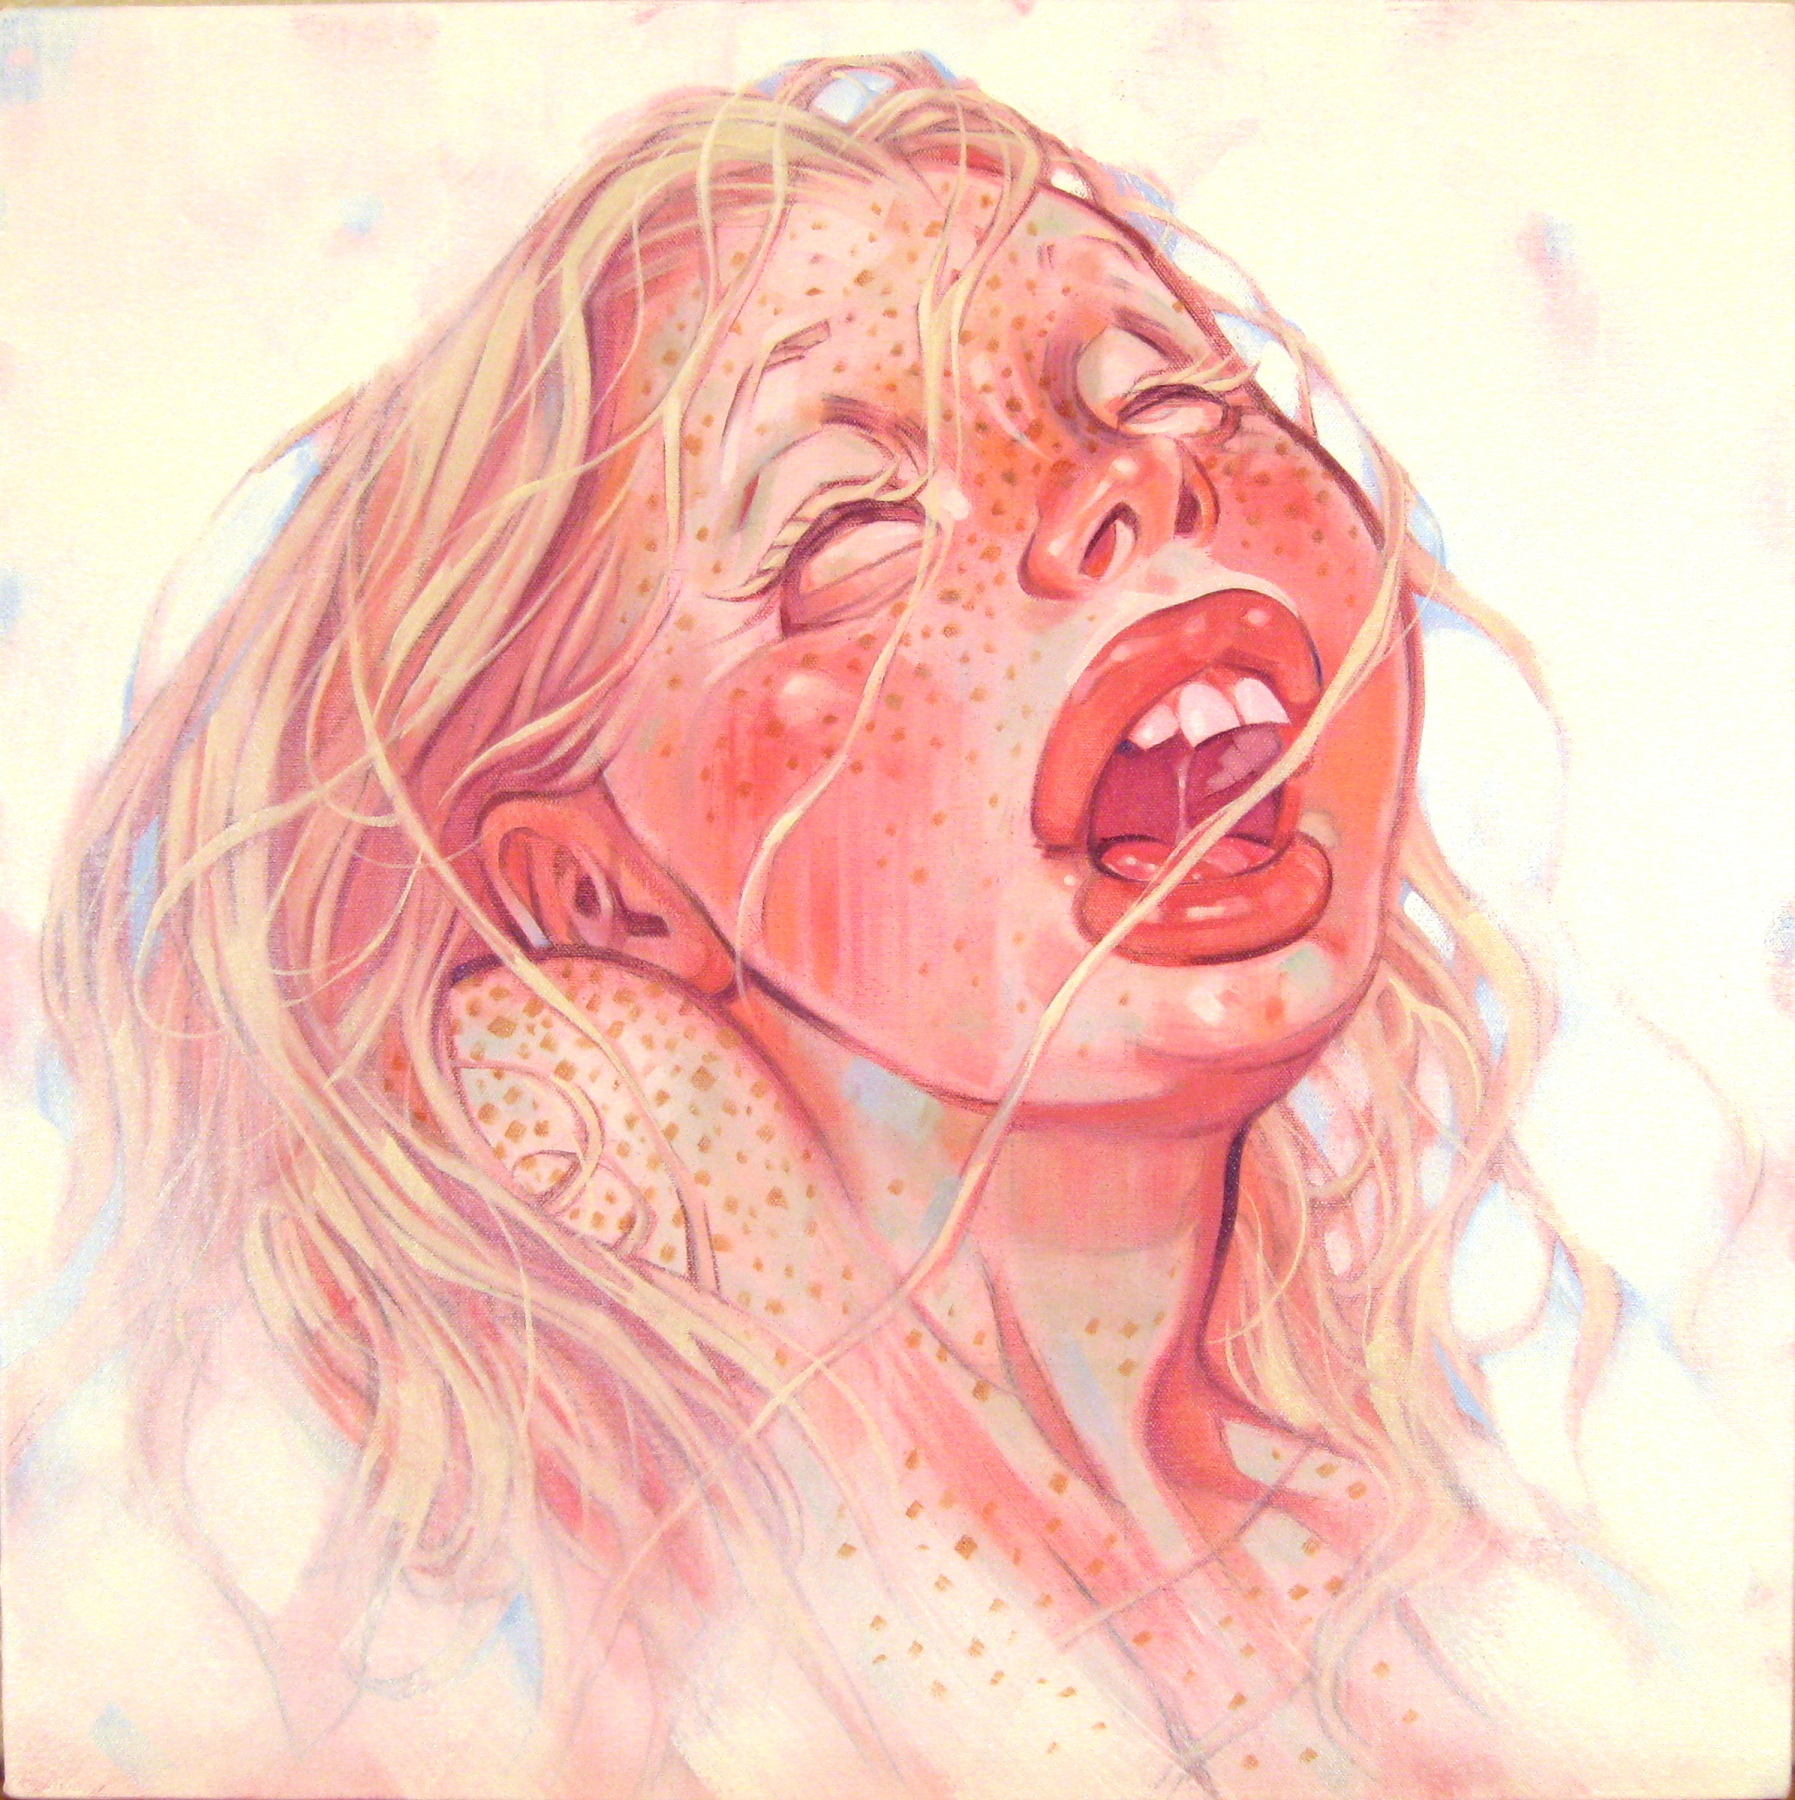 Ecstasy, 2009, oil on canvas, 20 x 20 inches, by Taiyo la Paix